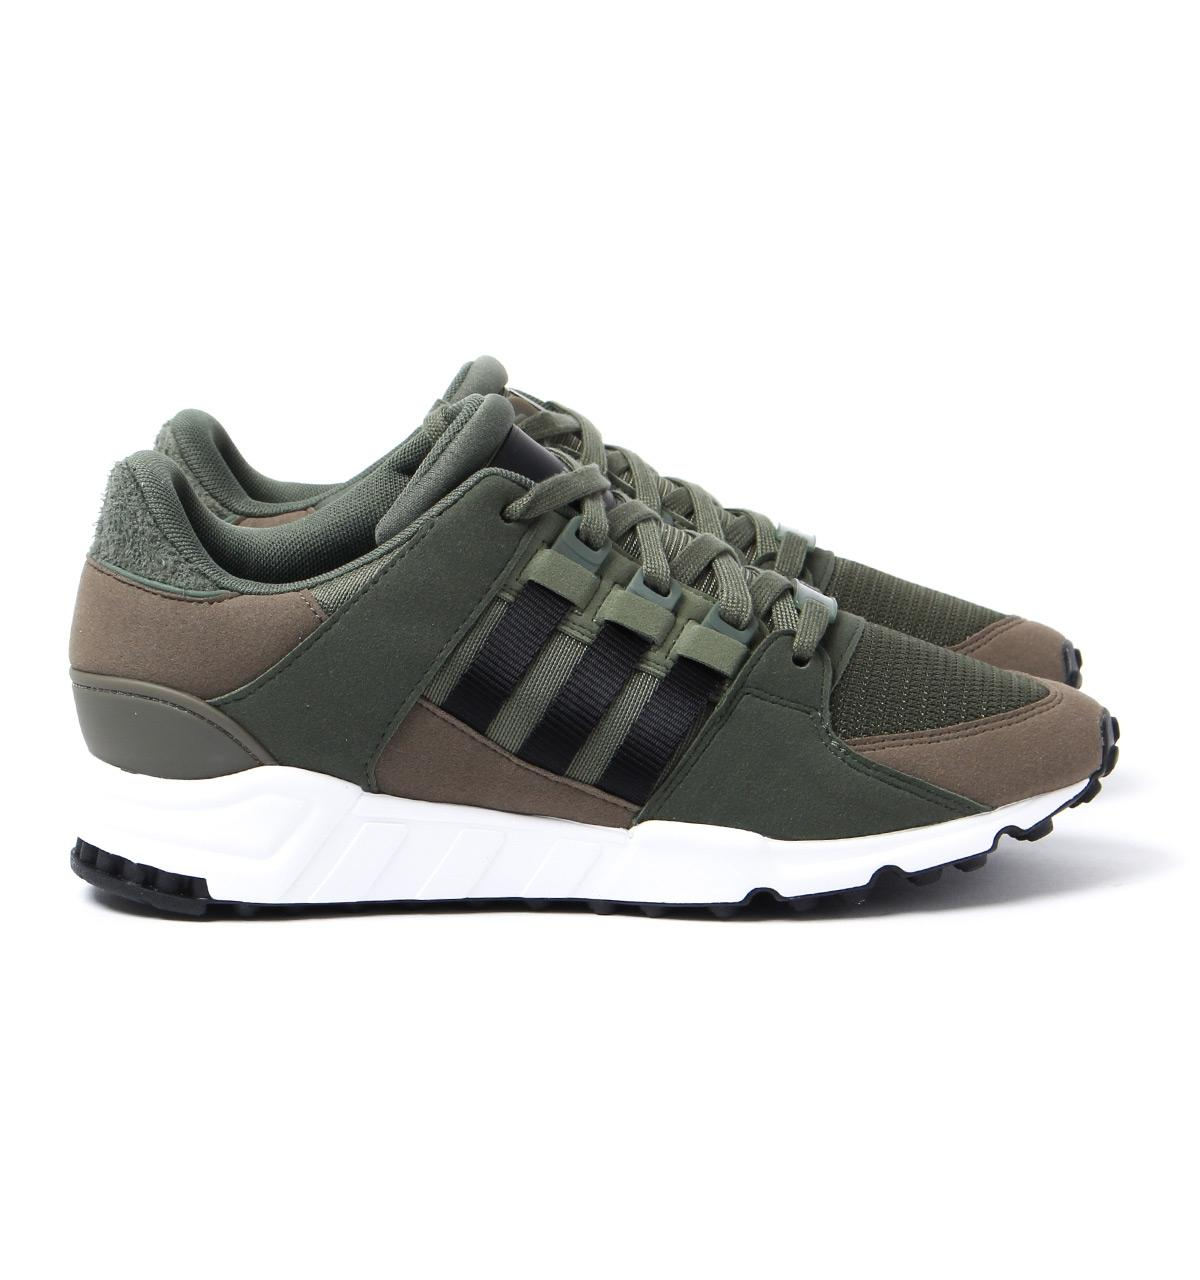 adidas Originals Rubber Eqt Support Rf Army Green Mesh Trainers for Men